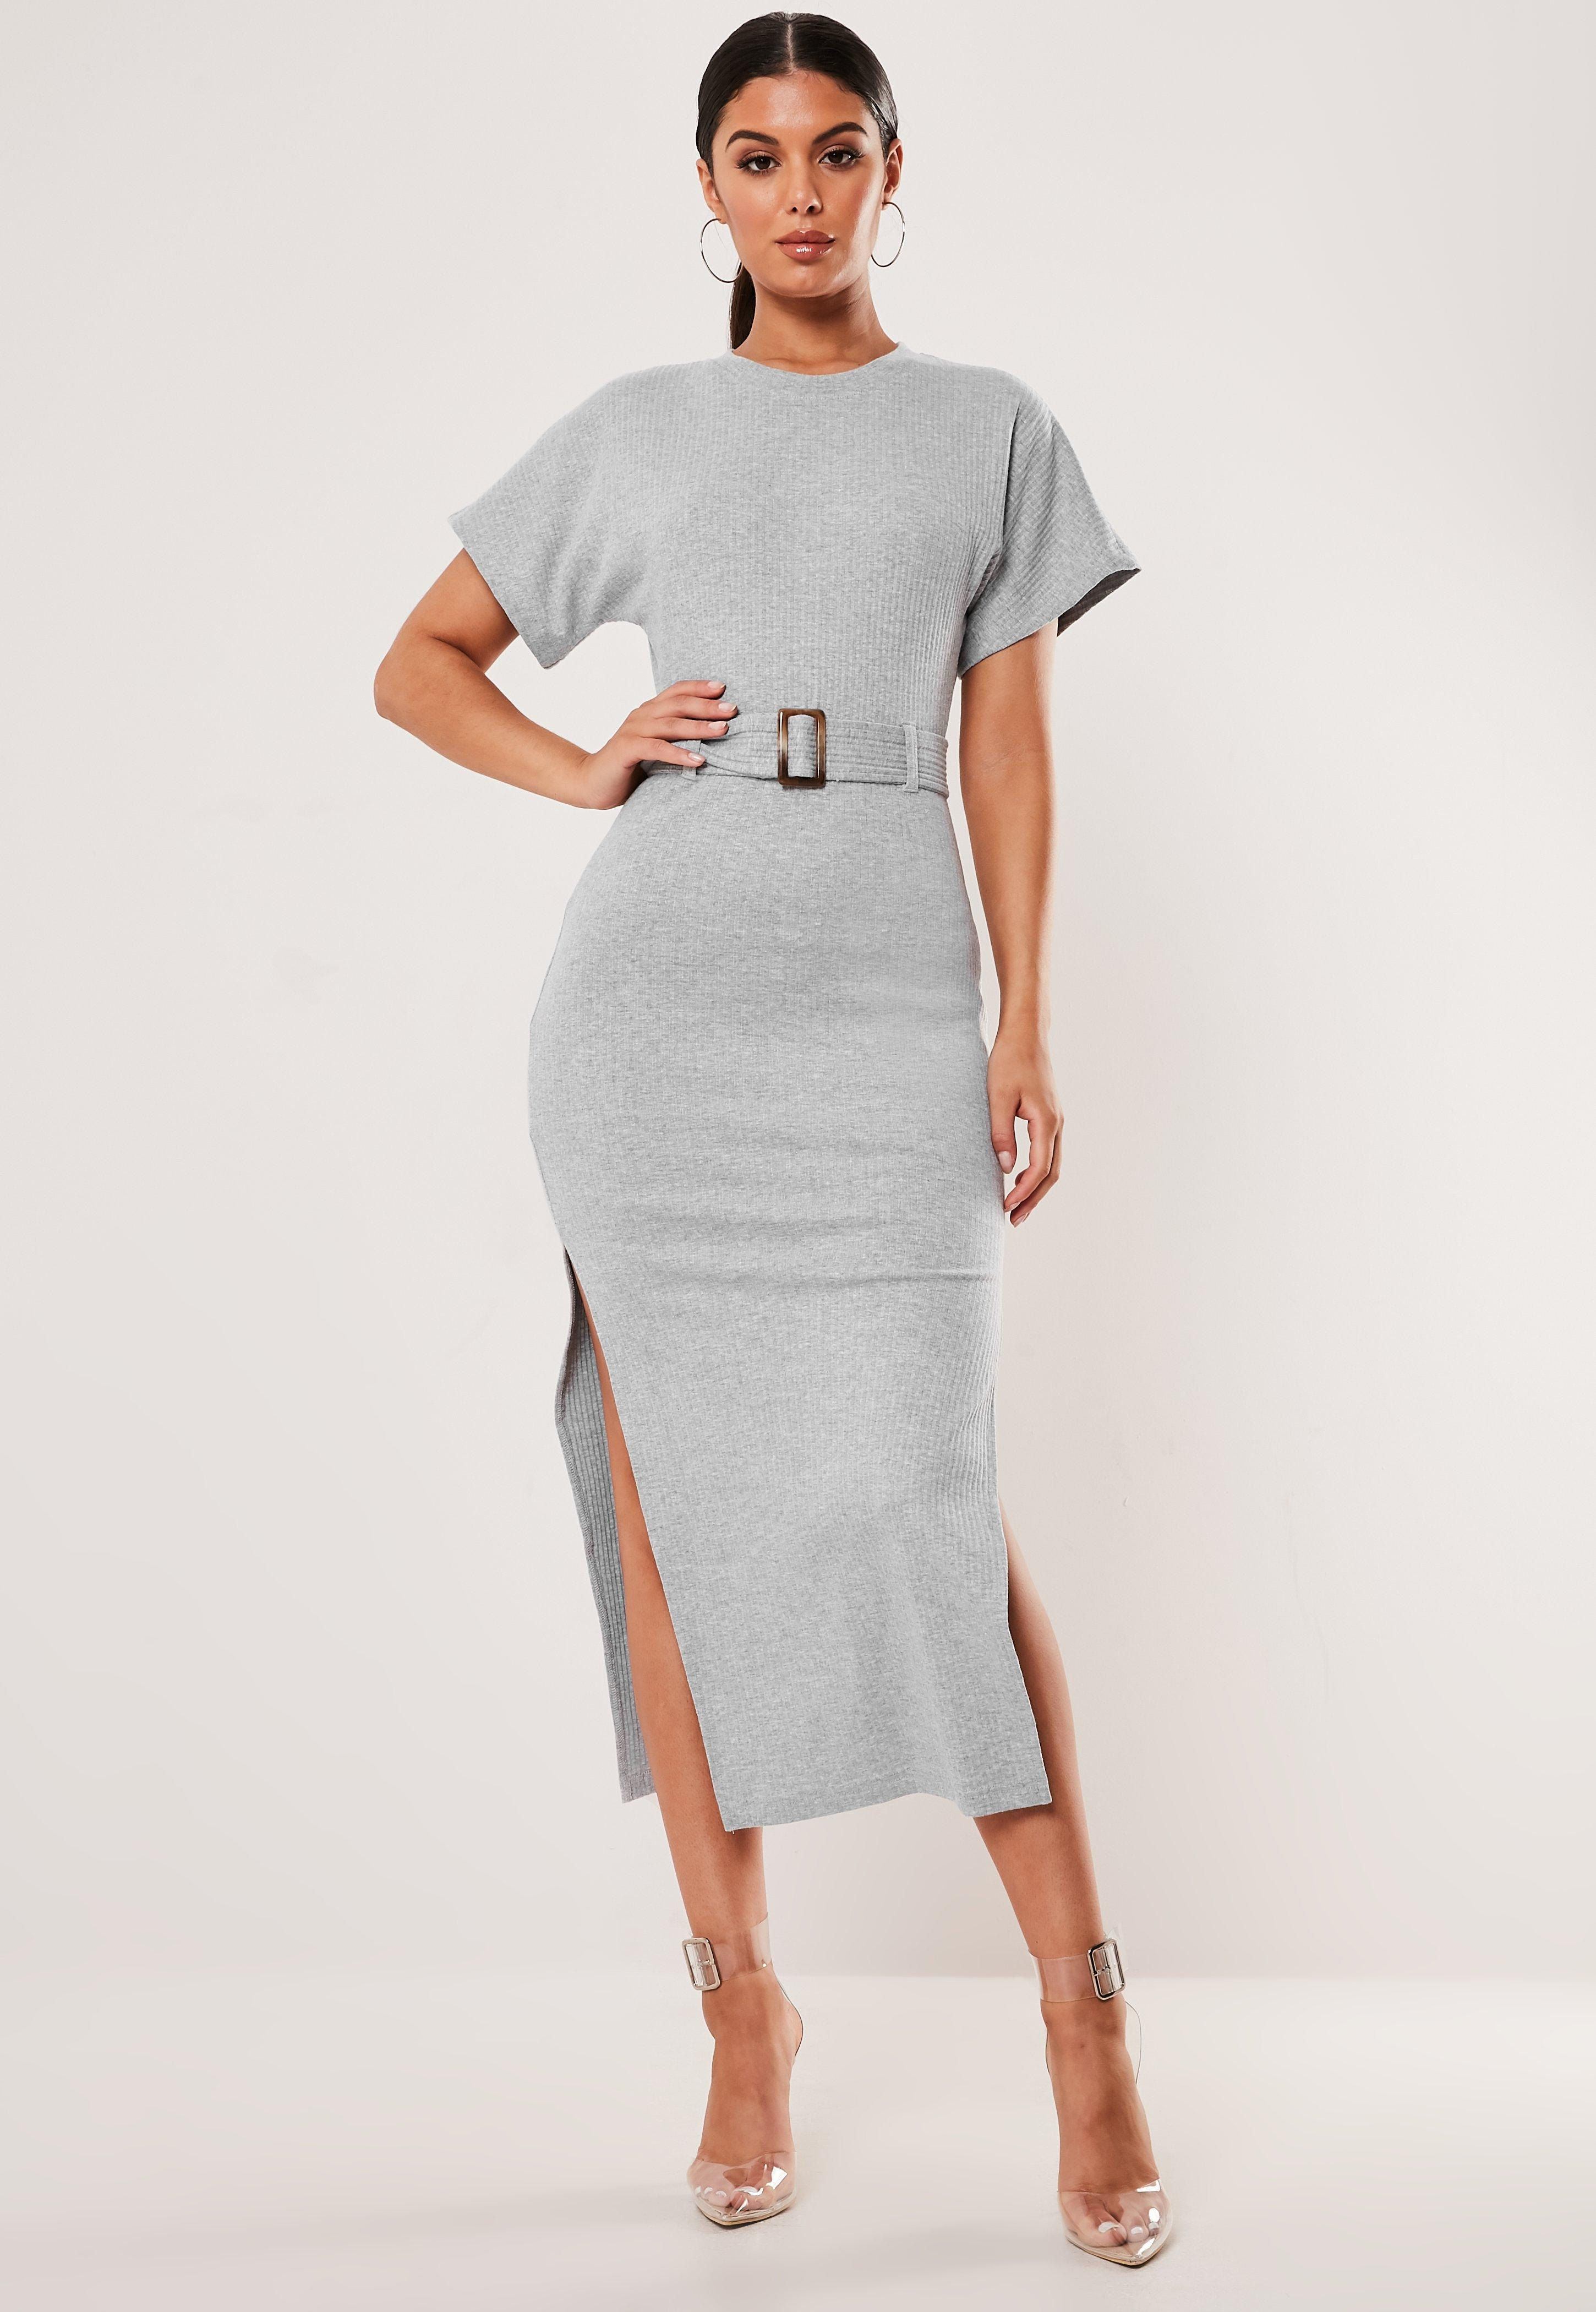 8f81d42bf3ee61 Bodycon Dresses | Nude, Grey & Green Bodycon - Missguided